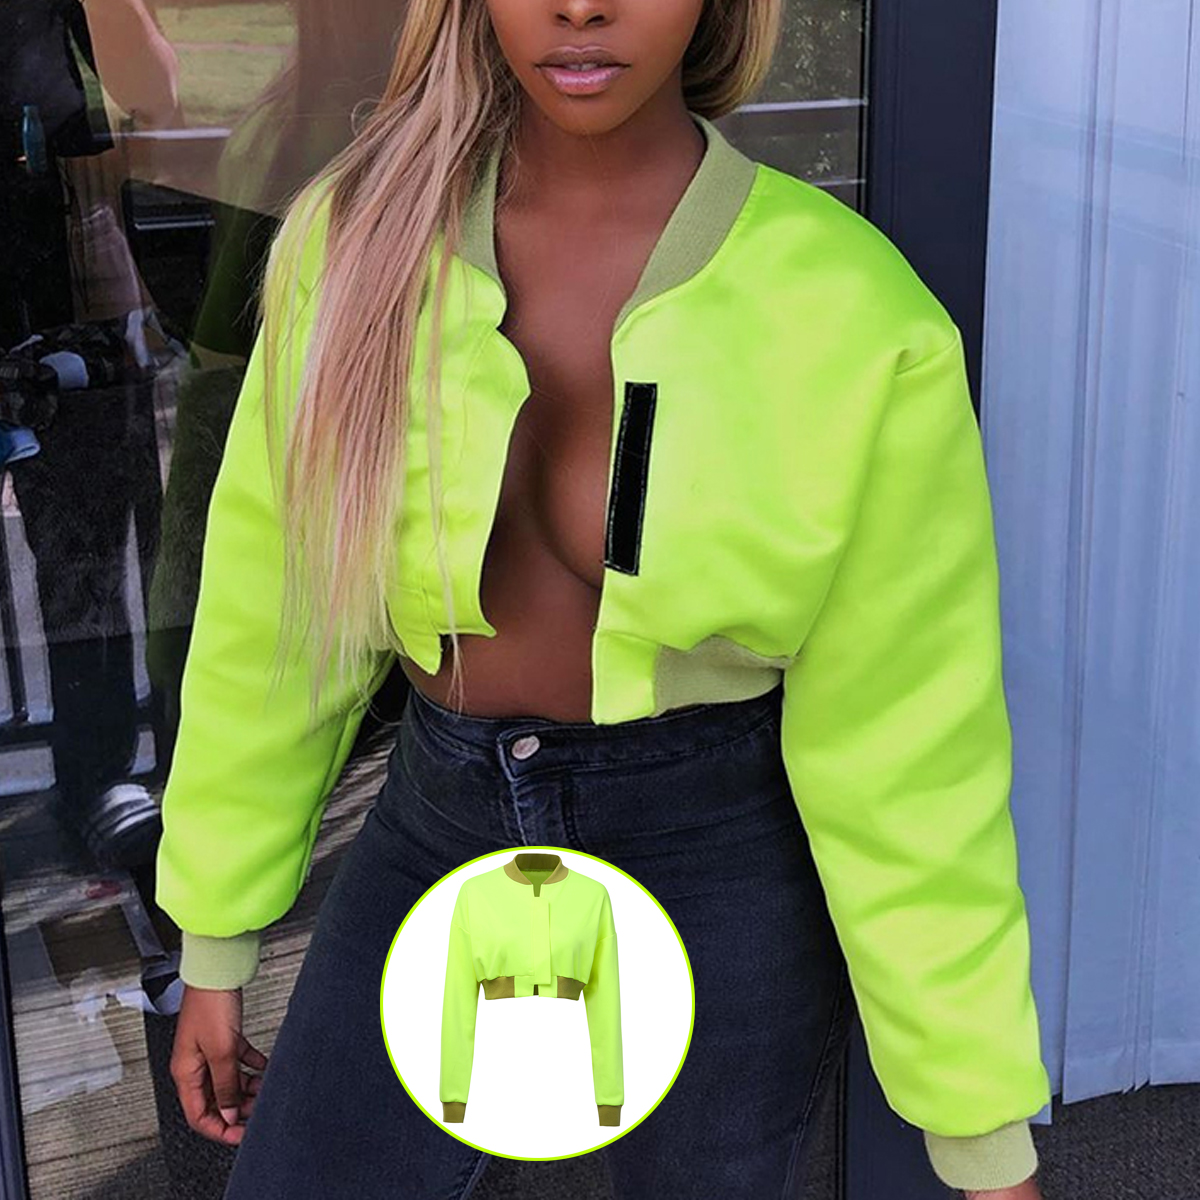 H89bade41cac64e98ae3c4ff57786af087 Neon Green Cropped Jacket Women Streetwear Outwear Windbreaker Bomber Baseball Coats and Jackets Autumn 2019